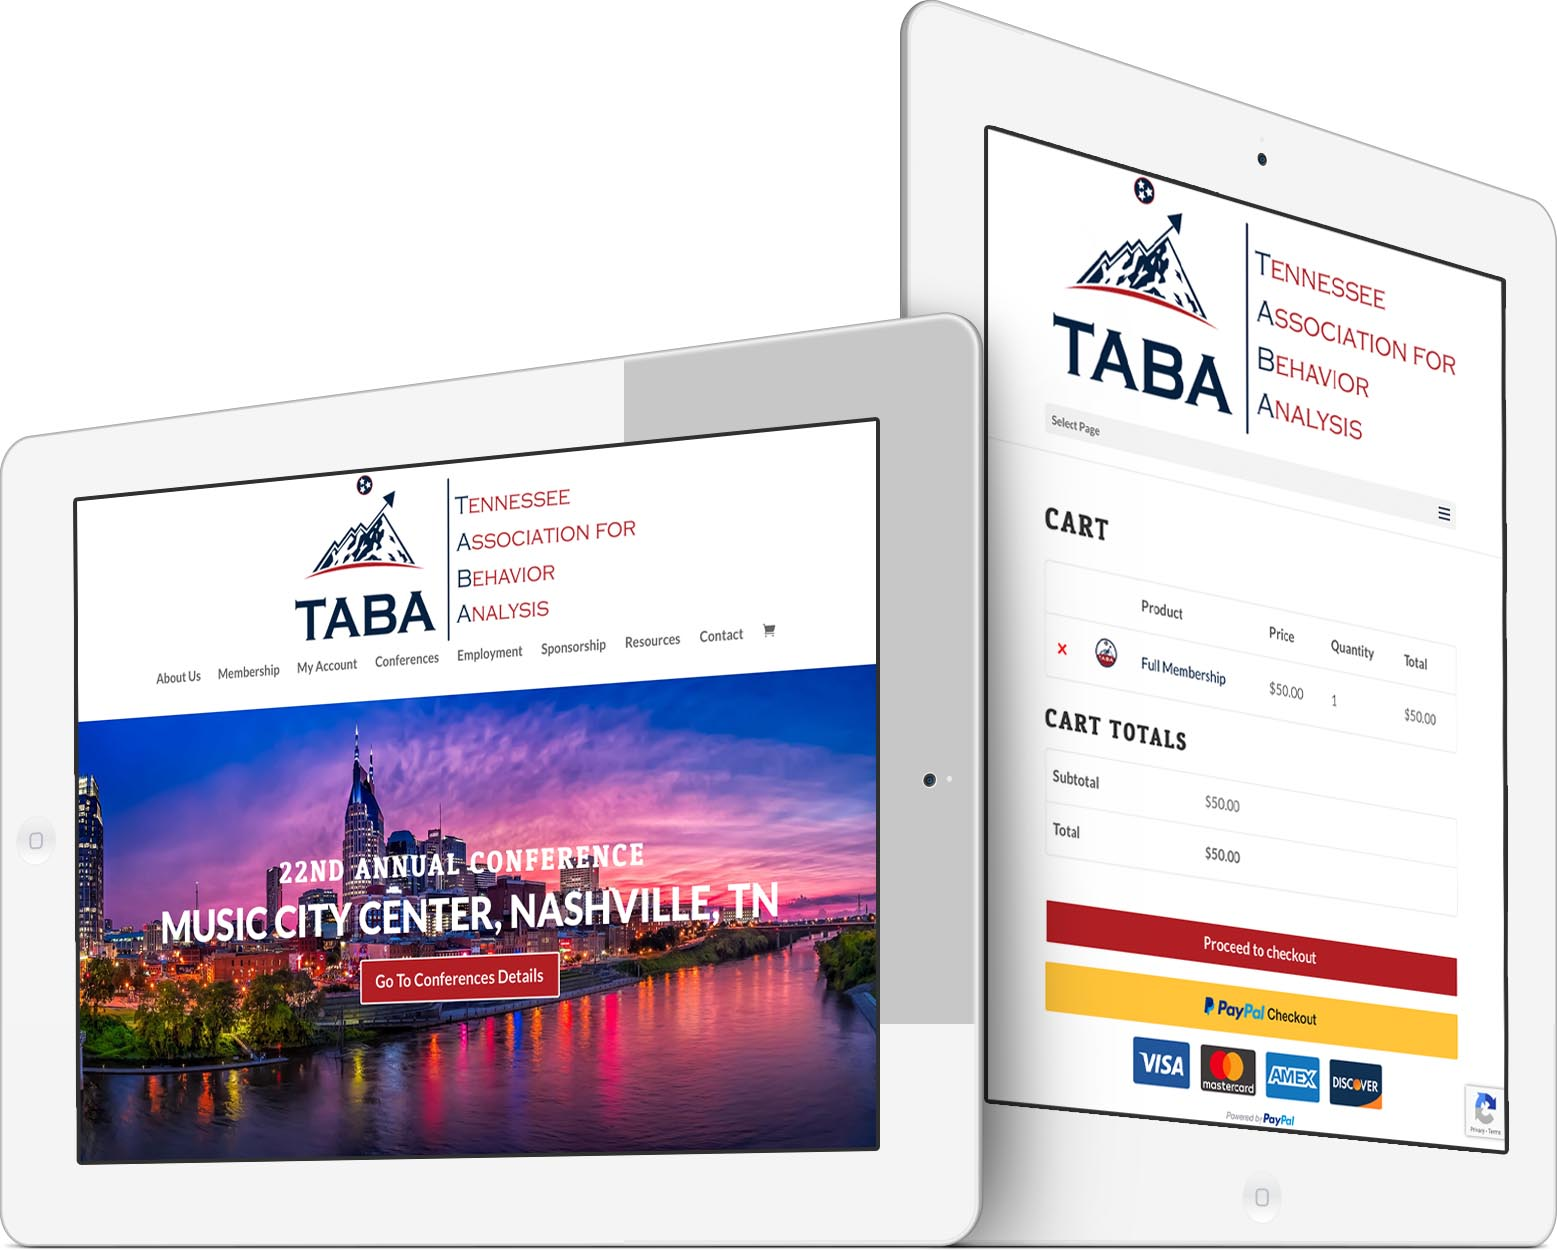 Tennessee Association for Behavior Analysis Responsive Web Design